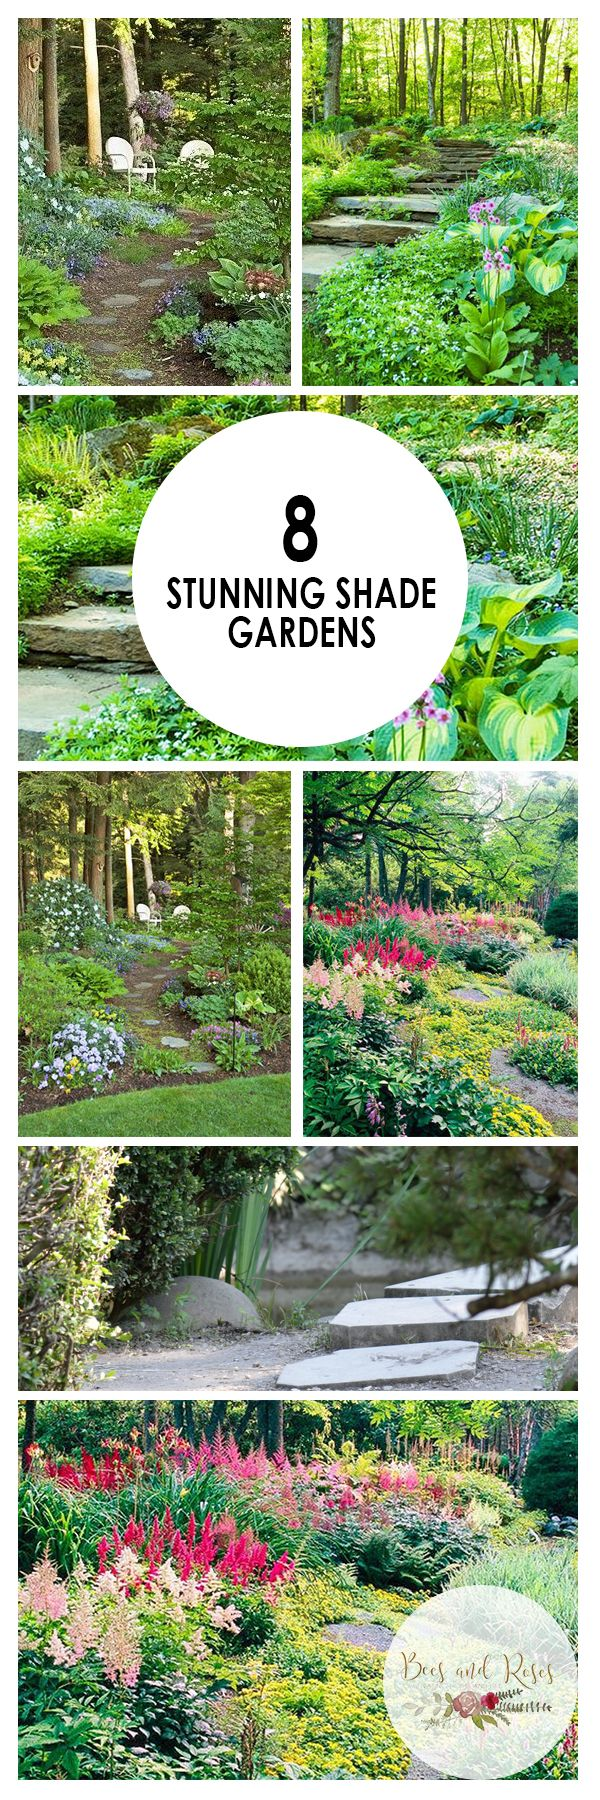 Best 25+ Shade Landscaping Ideas On Pinterest | Shade Garden, Backyard  Plants And Side Yard Landscaping